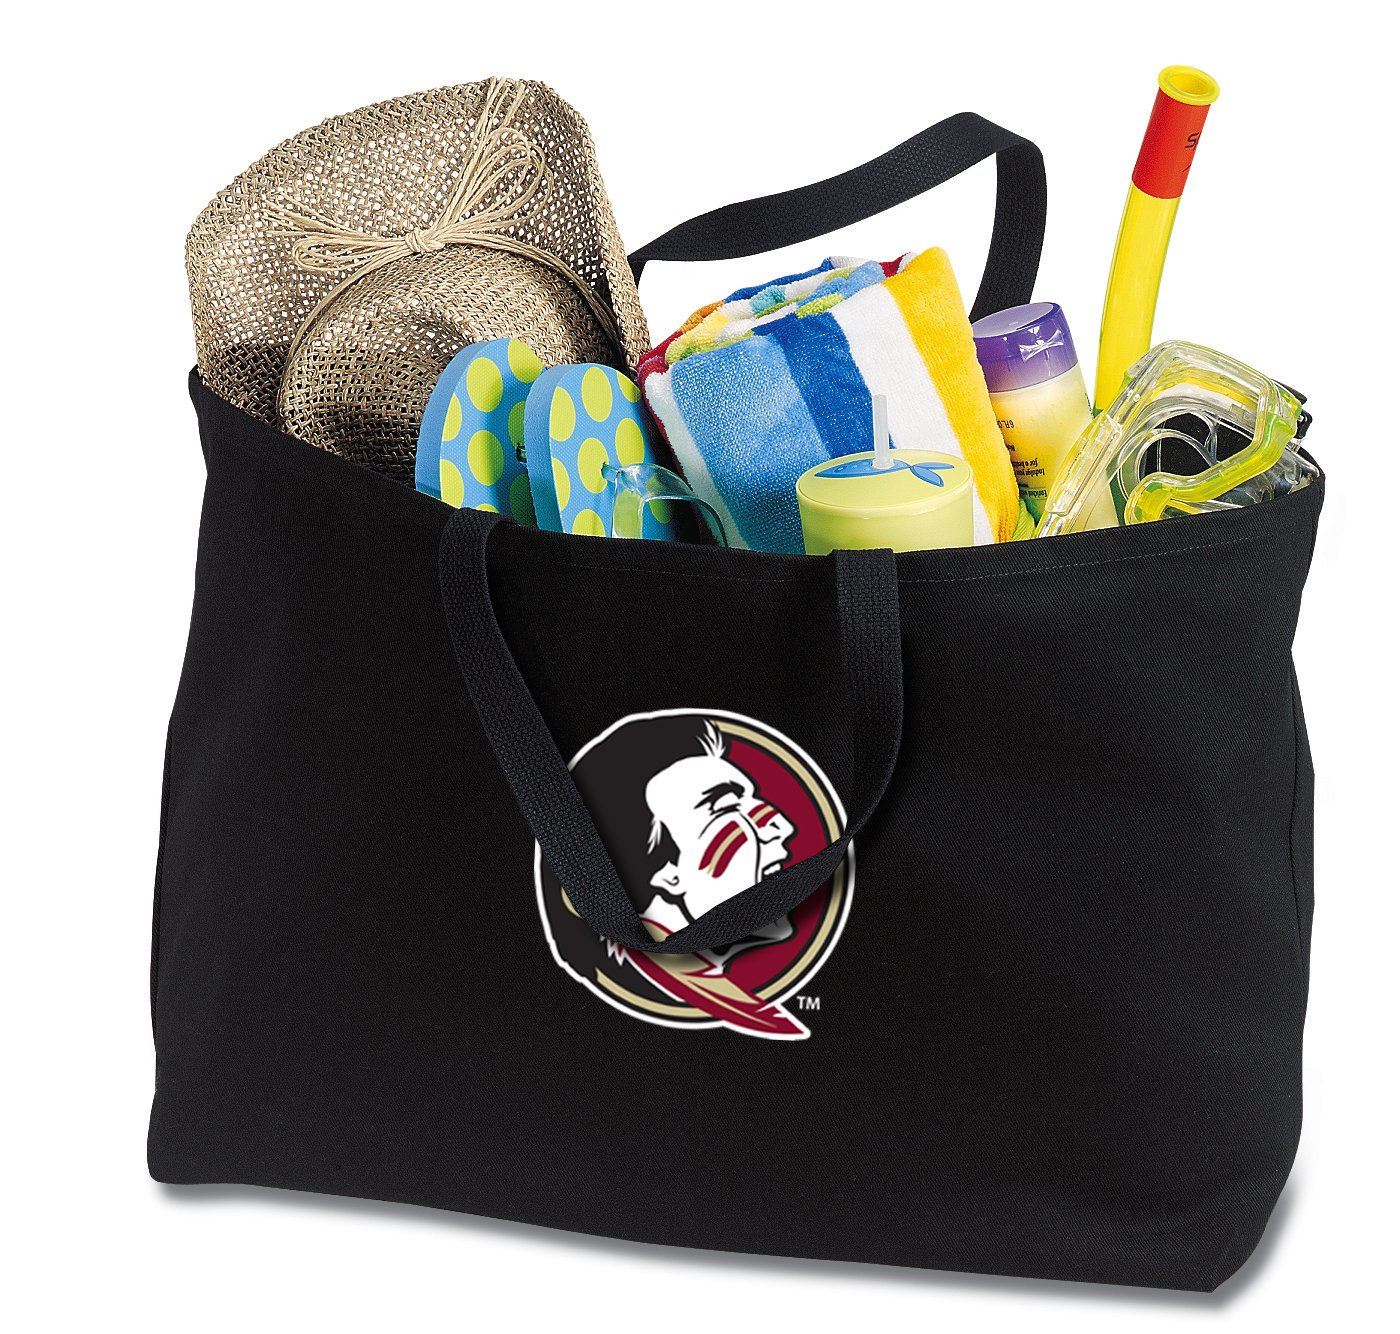 JUMBO FSU Tote Bag or Large Canvas Florida State Shopping Bag